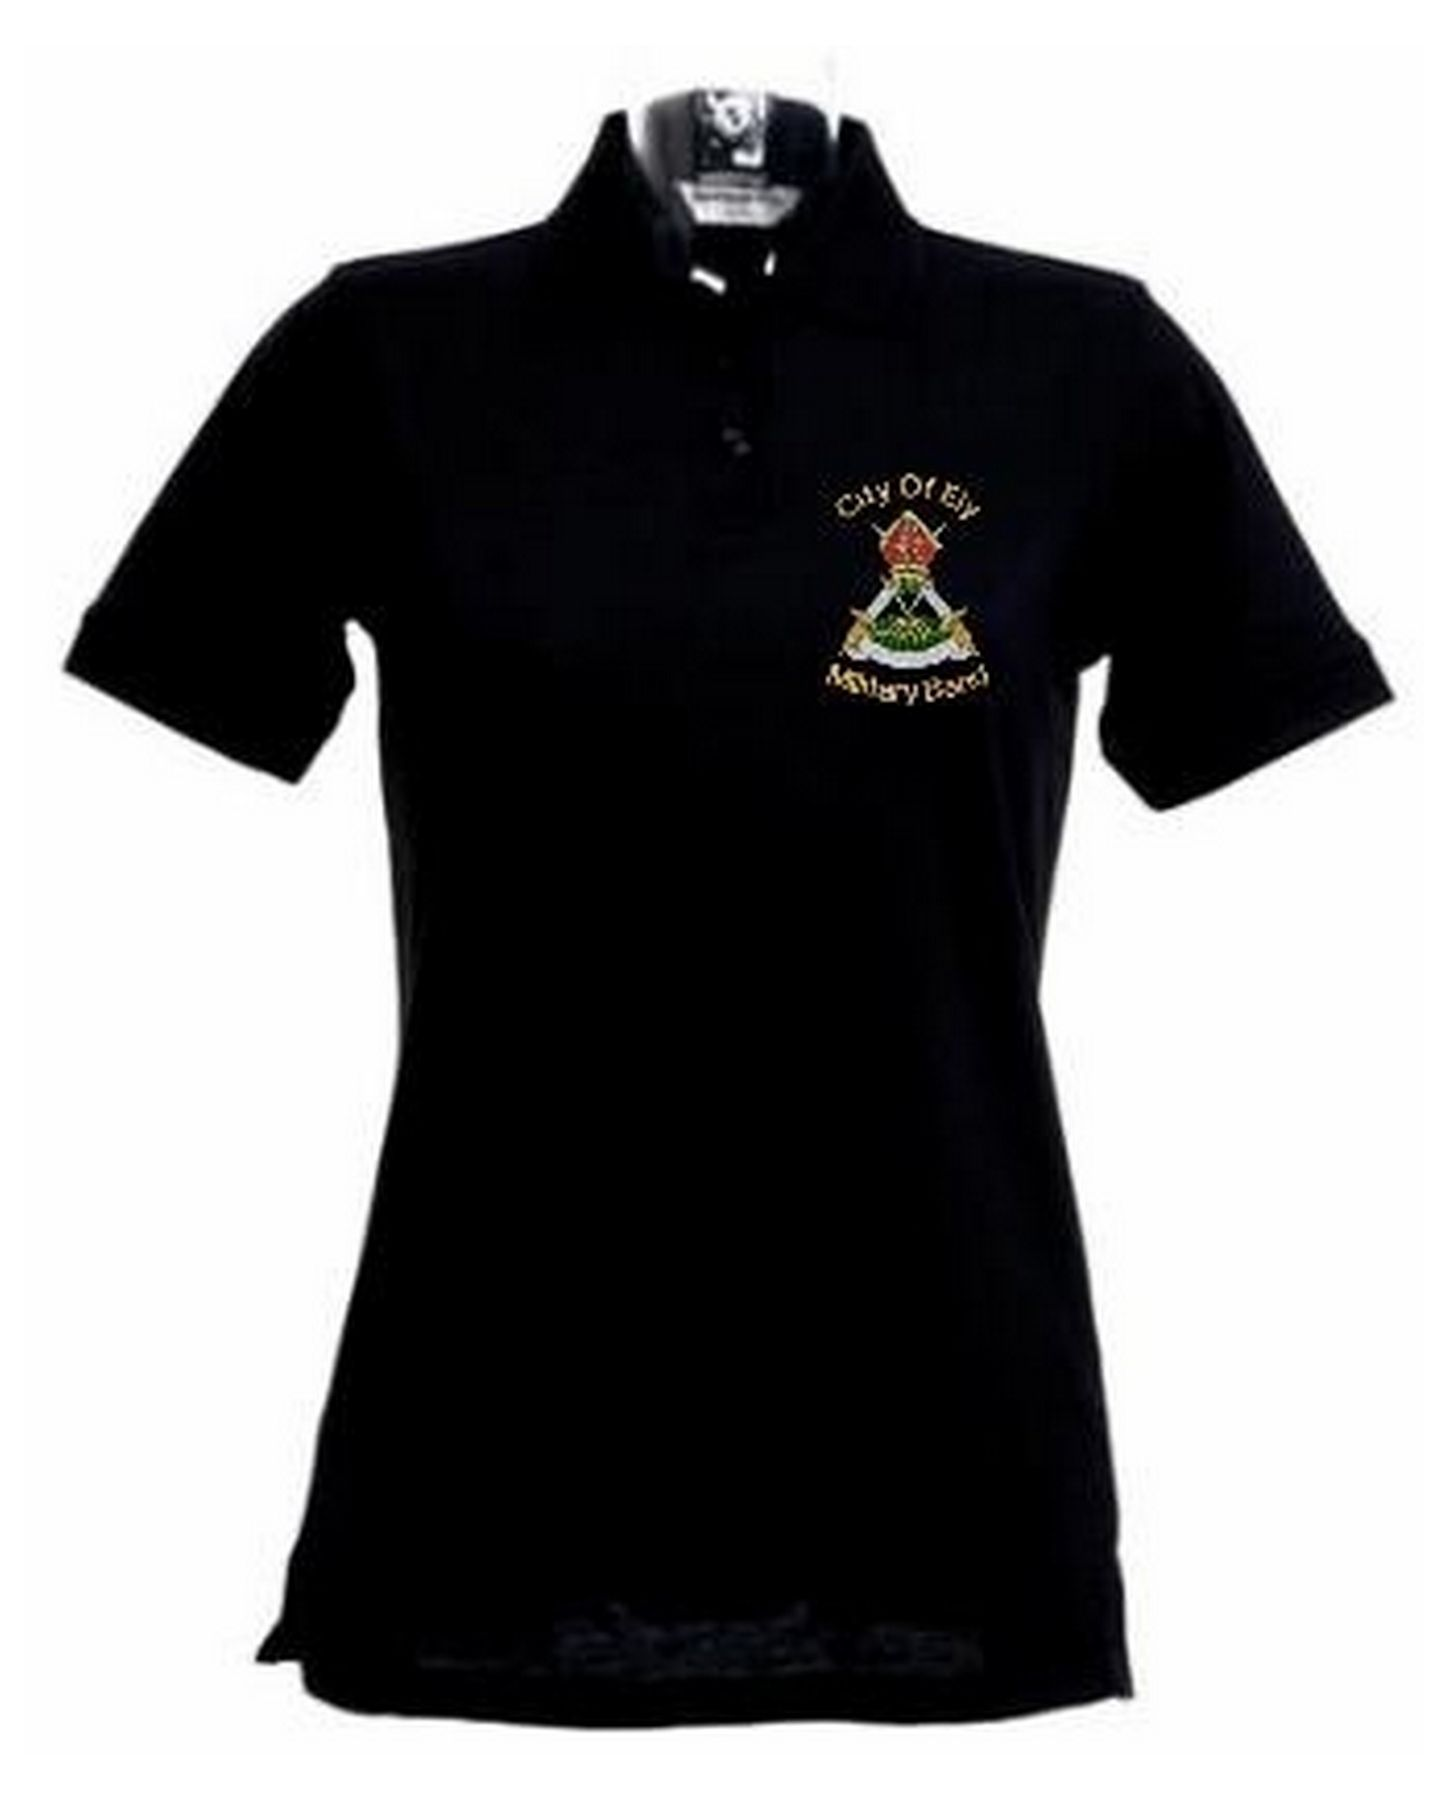 Ely Military Band – Polo Lady Fit